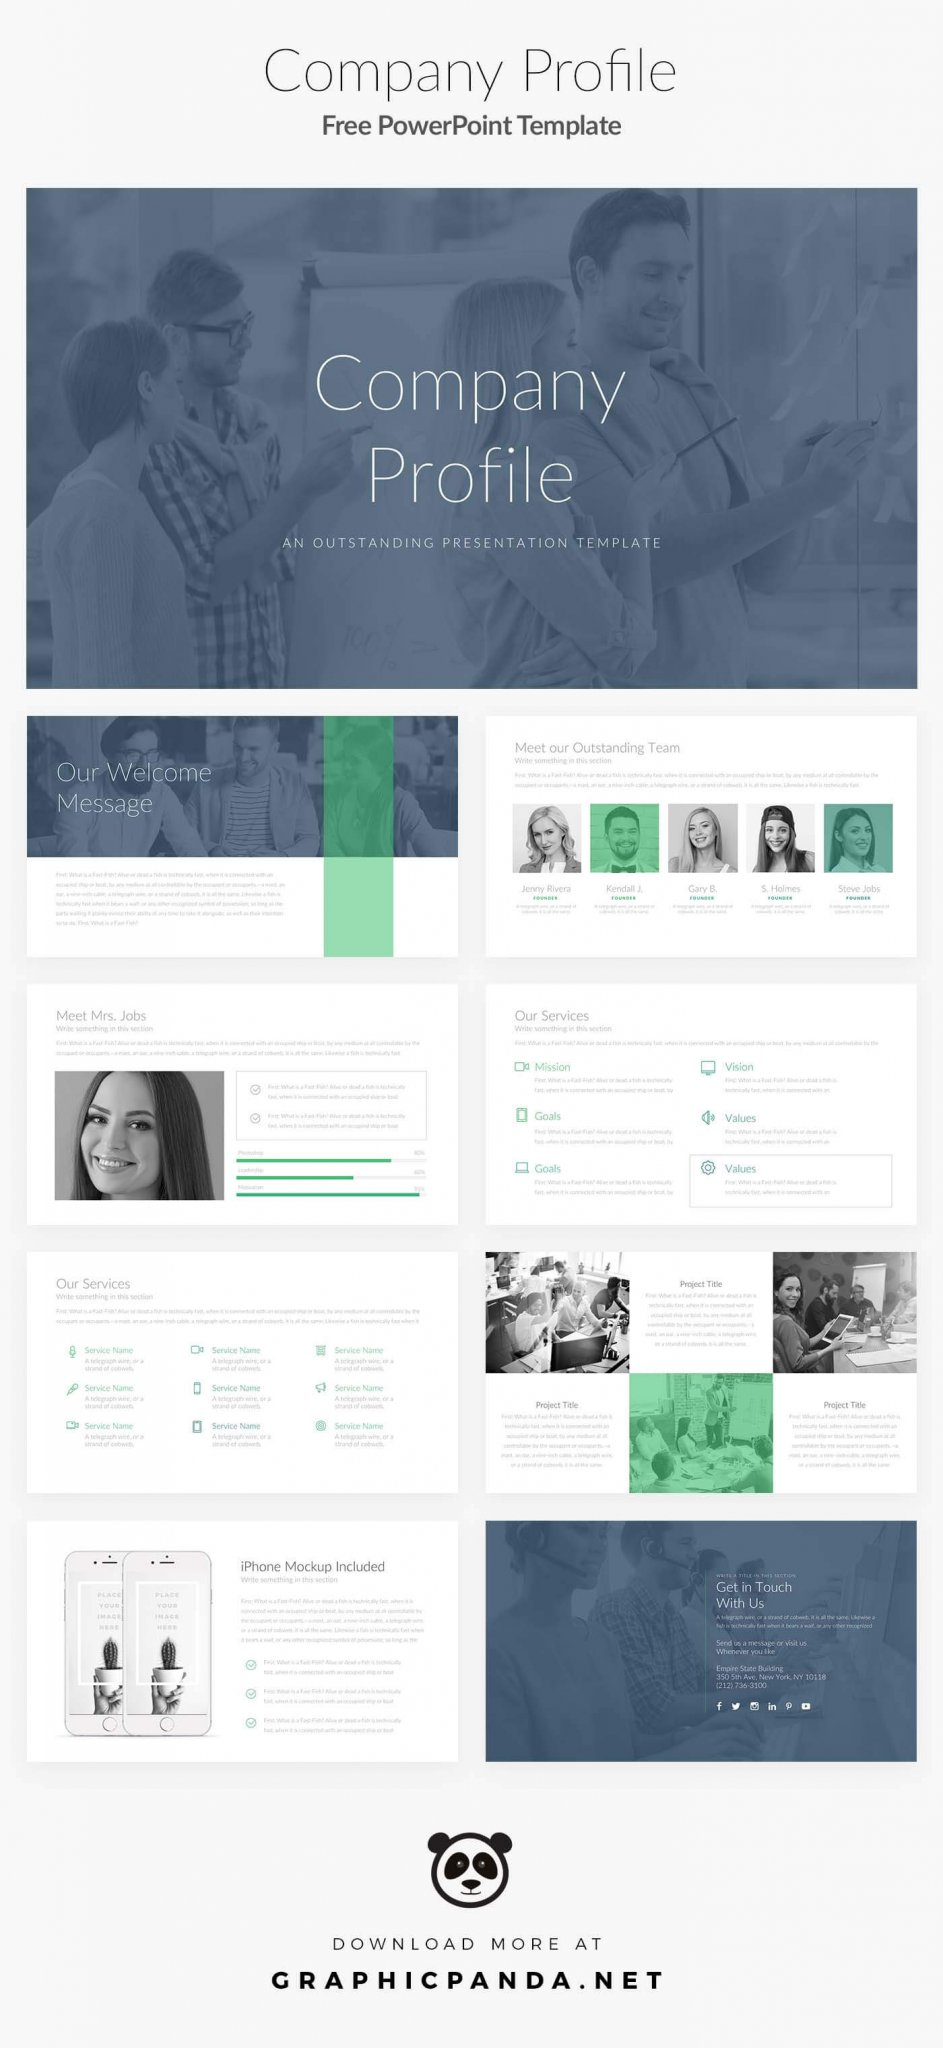 BEST FREE GOOGLE SLIDES THEMES - Free PowerPoint Template Company Profile - best free powerpoint template 2017